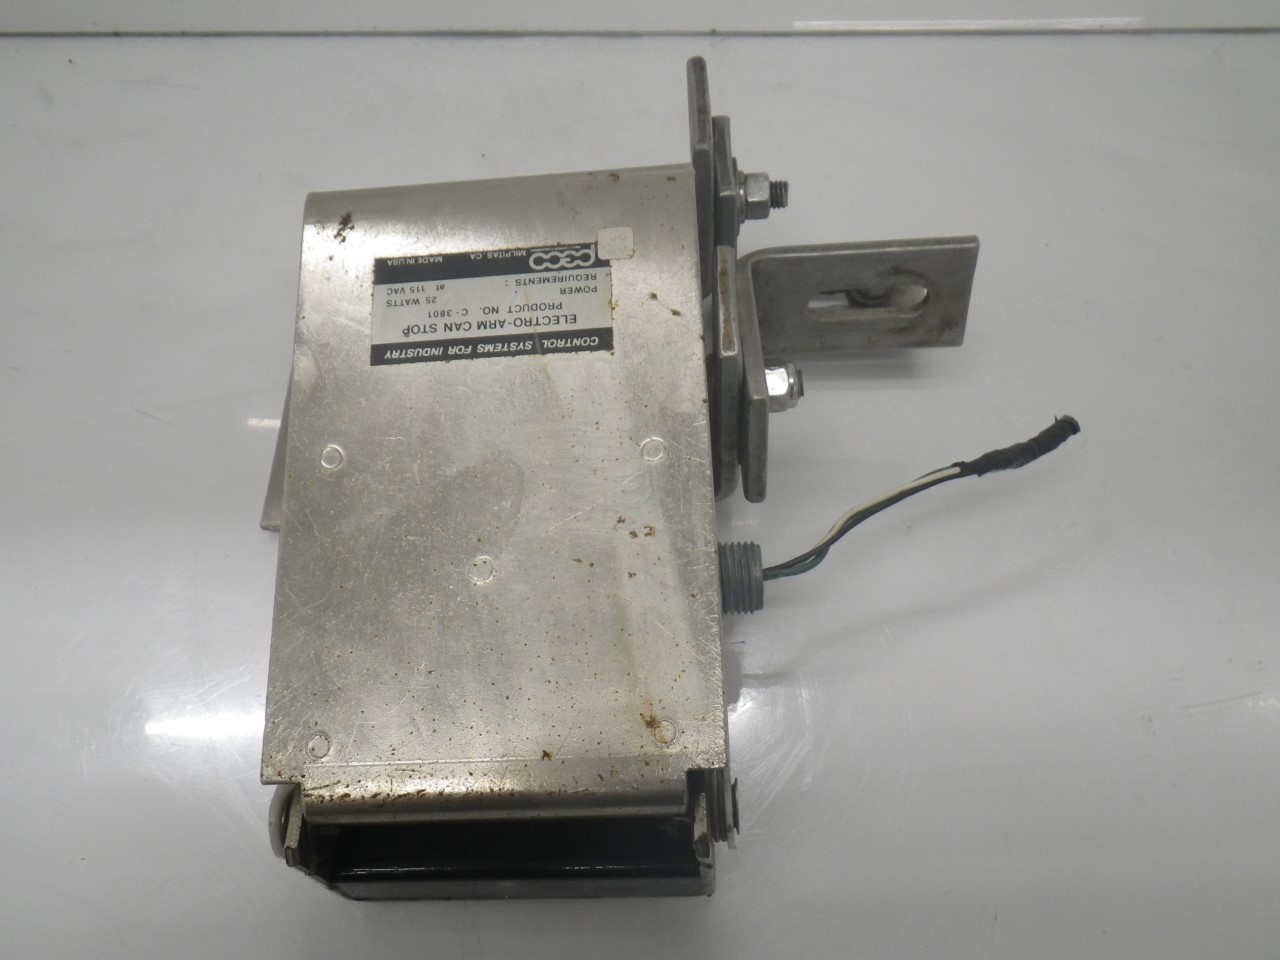 IMGP6937C-3801 C-3800A 3012Peco Electro-arm Controls forPackage Inspection(Used Tested) (6)